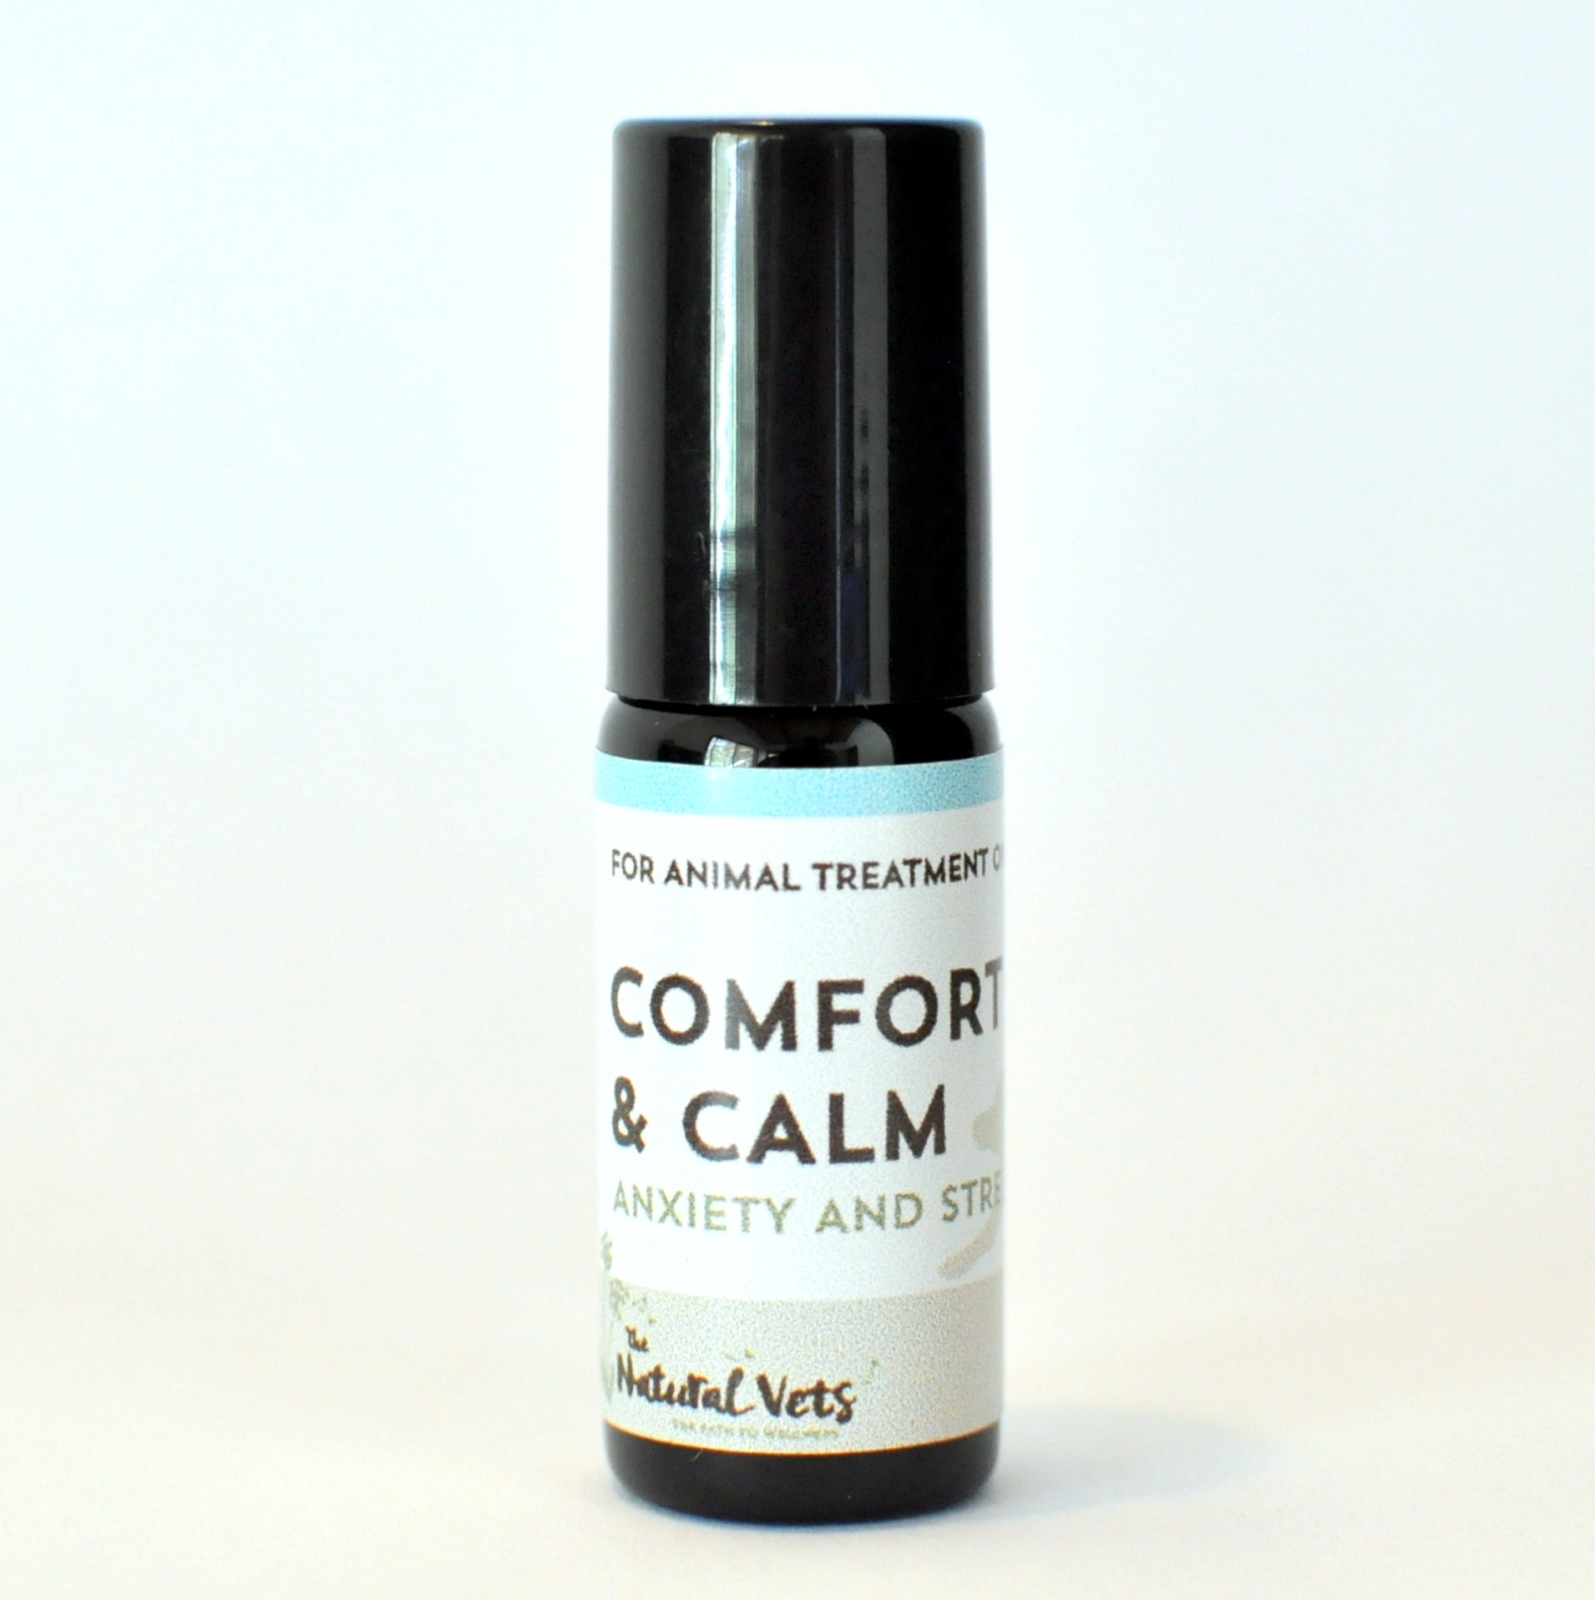 Comfort & Calm - 5mL - Anxiety & Stress Relief